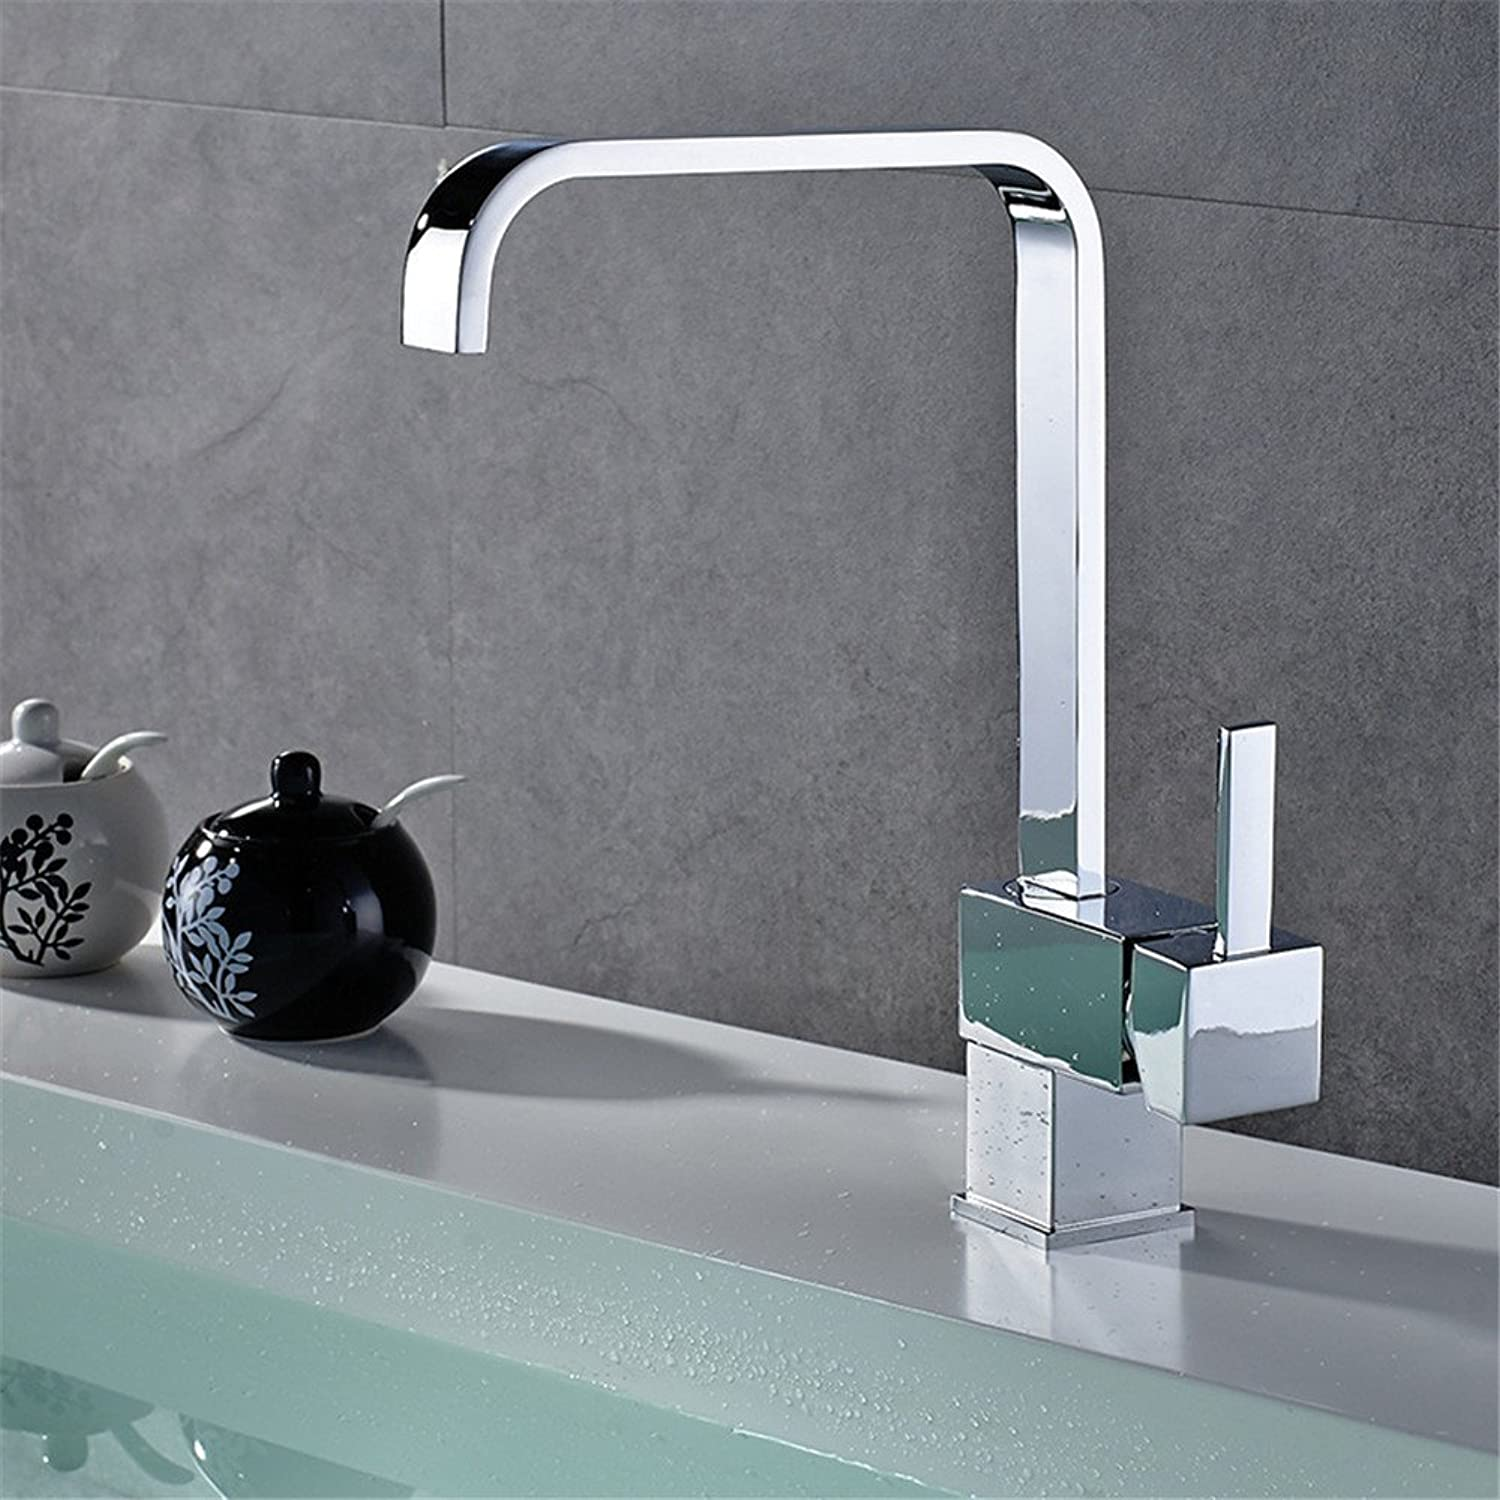 FHLYCF European modern Copper Kitchen Faucet vegetable washing basin faucet square cold and hot water 360 degrees redation sink faucet